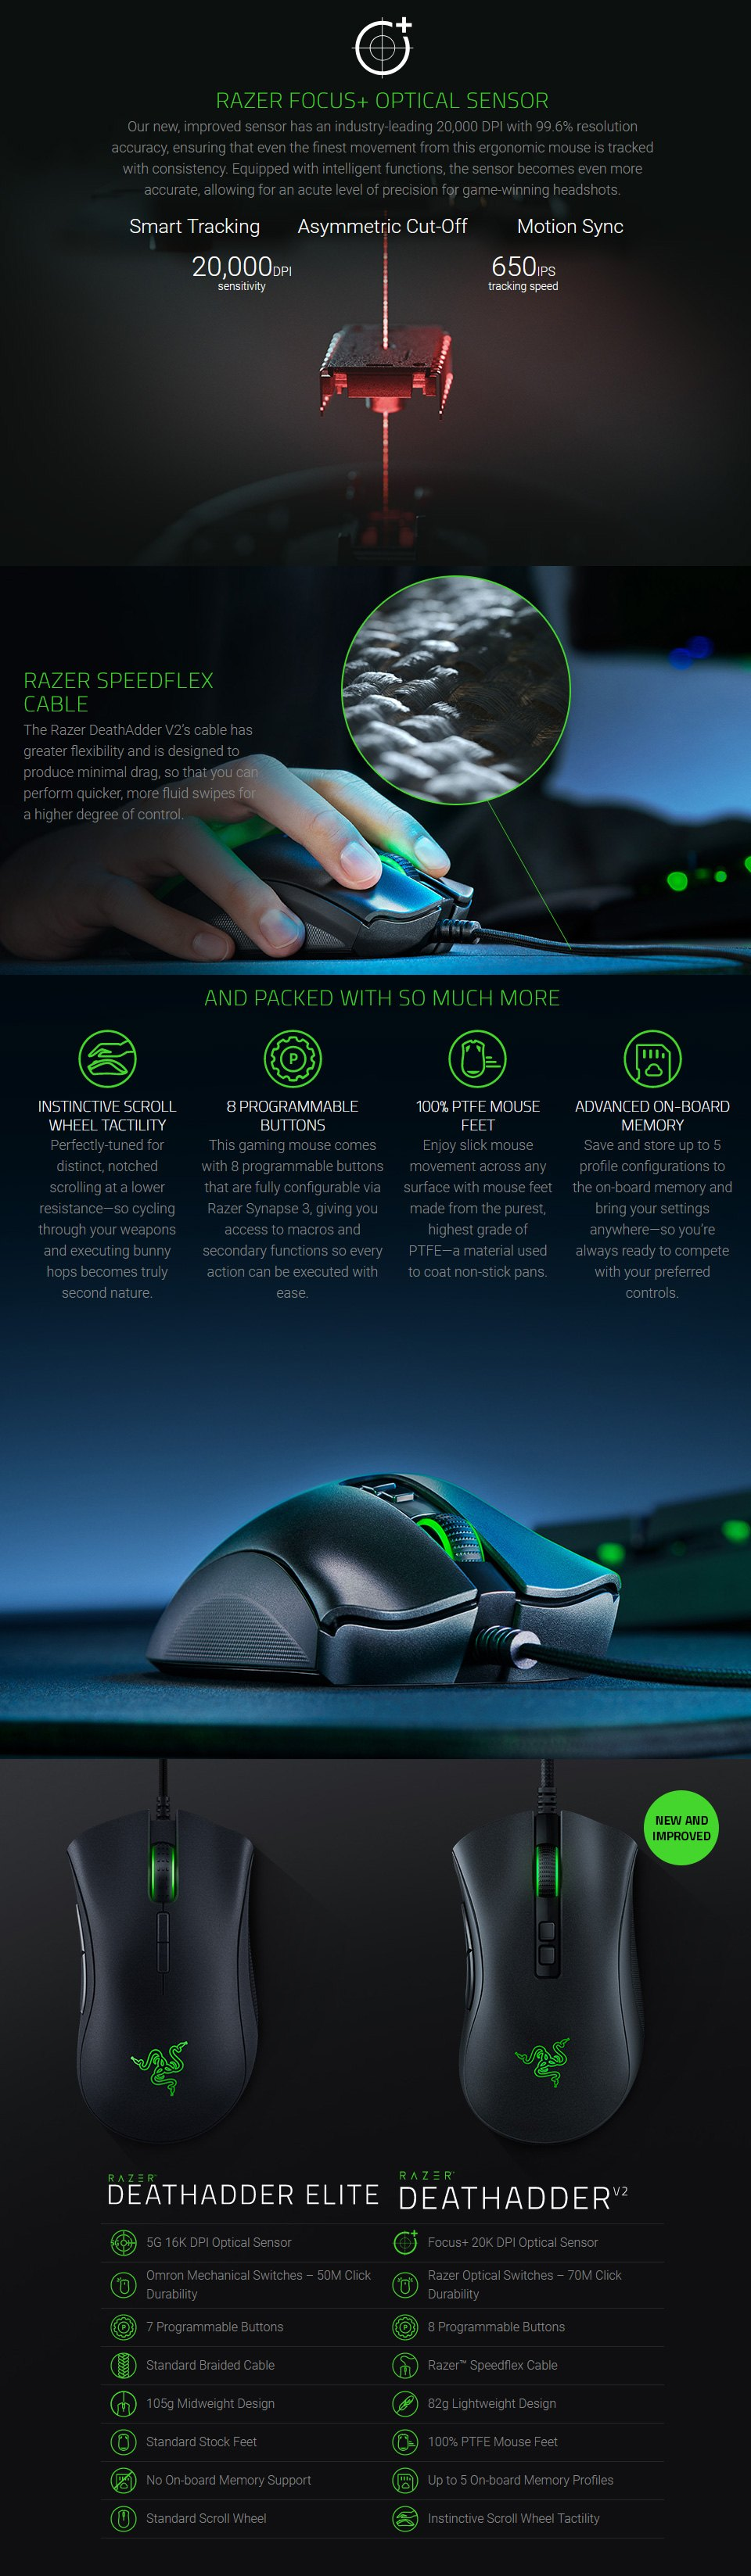 Razer DeathAdder V2 Optical Gaming Mouse features 2